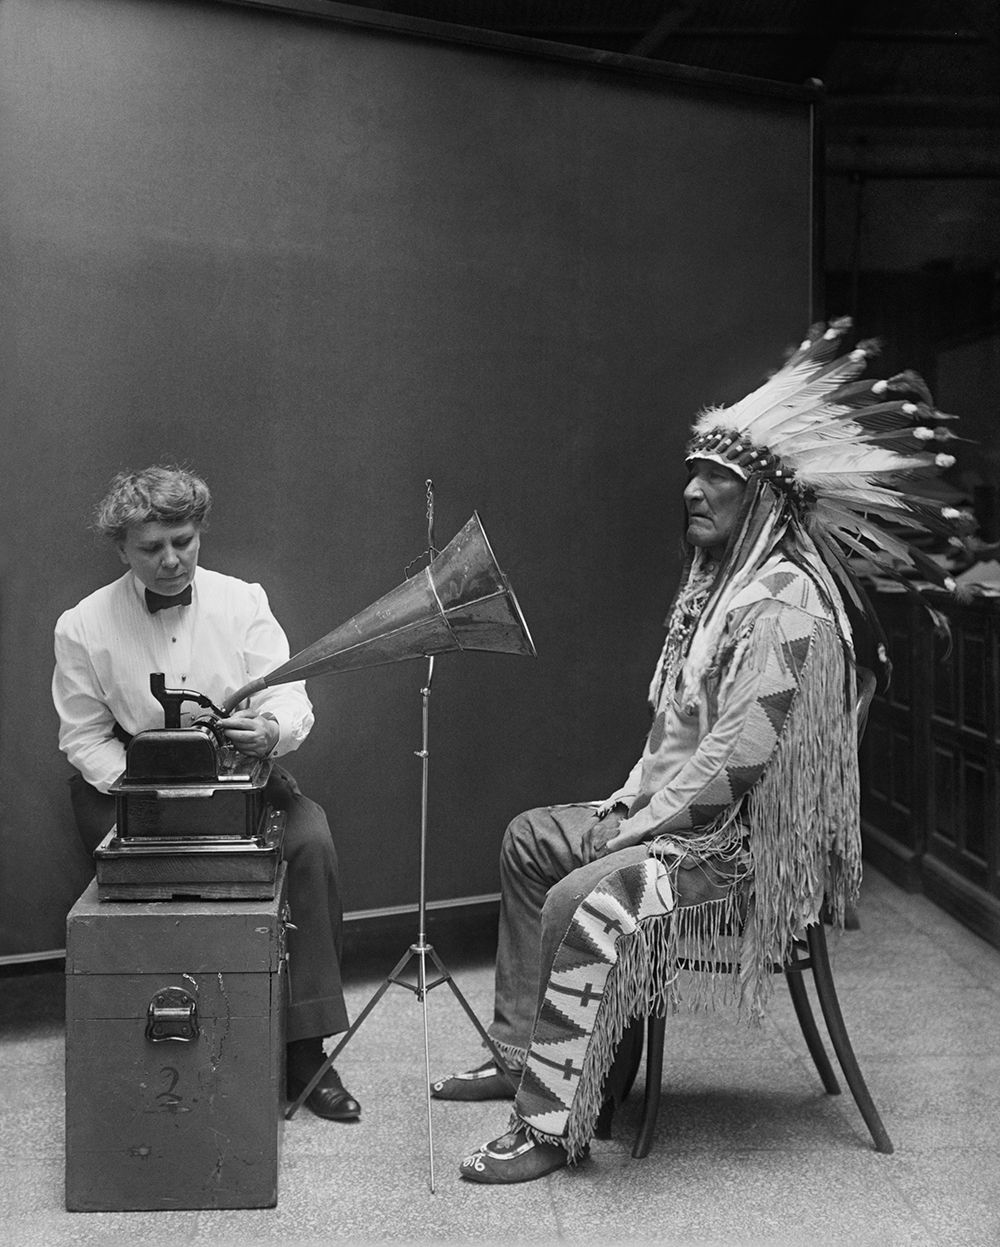 Archivists work with physicists. LHC physicists preserve Native American voices | symmetry magazine